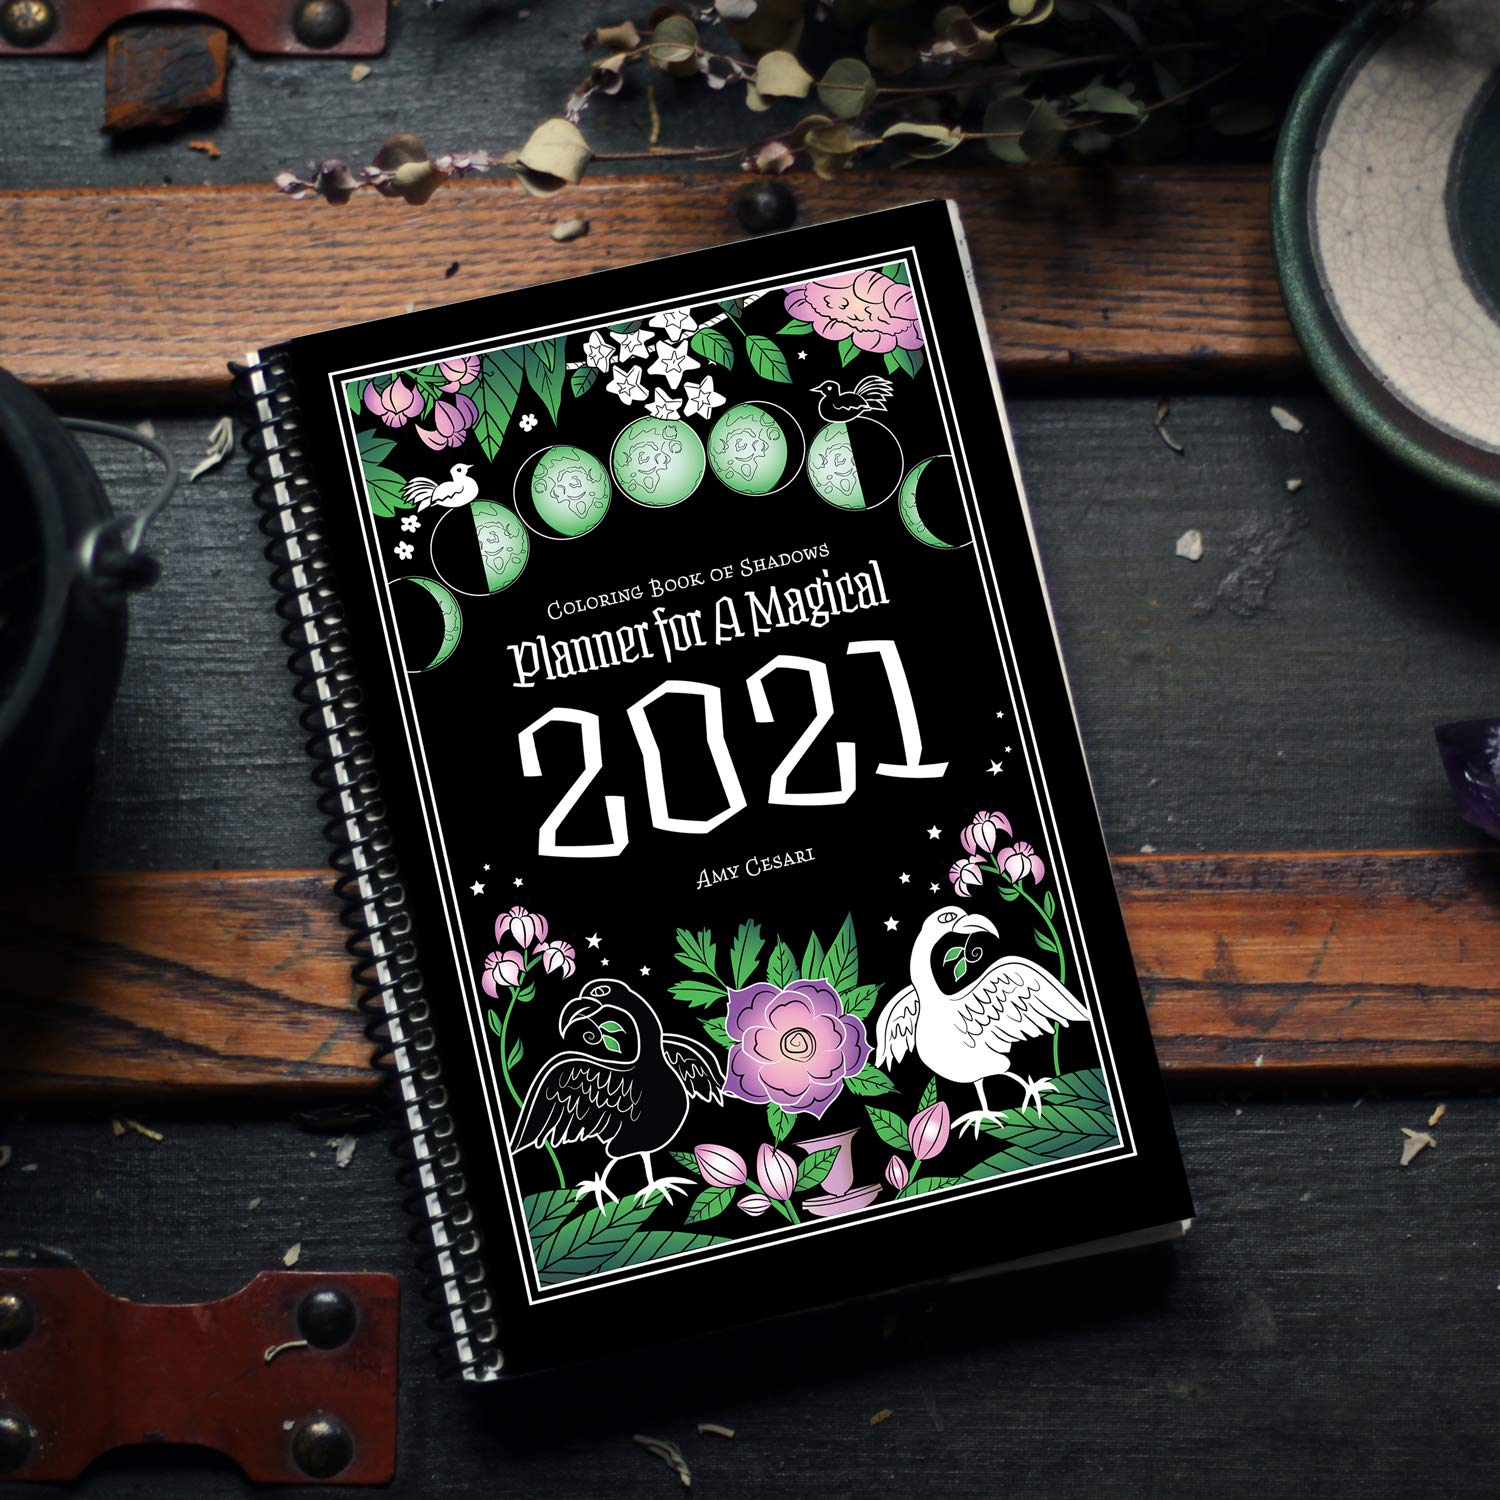 Coloring Book Of Shadows Planner For A Magical 2021 Amy Cesari 9781733201483 Amazon Com Books